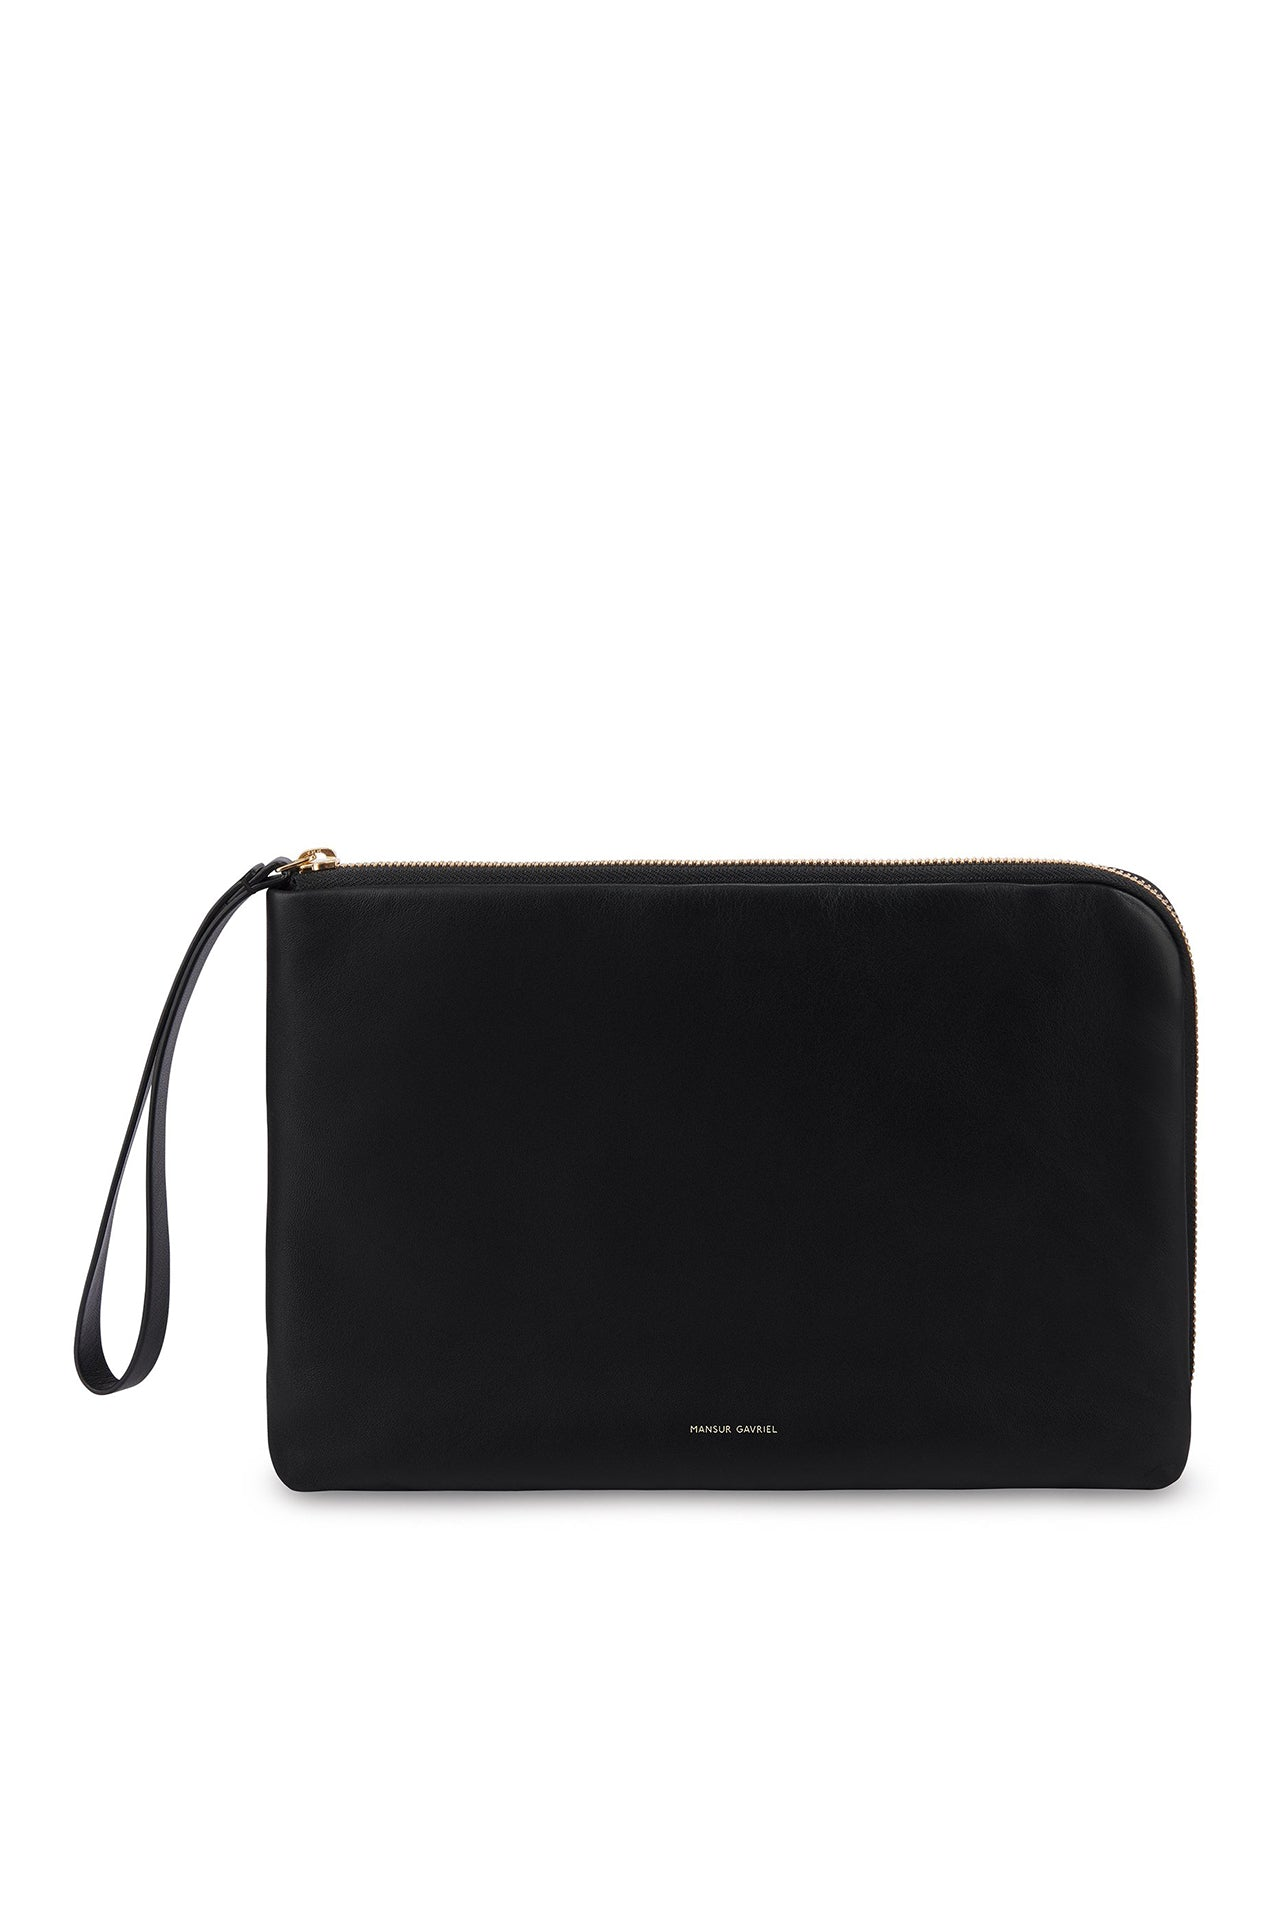 Pillow Pouch in Black with Flamma